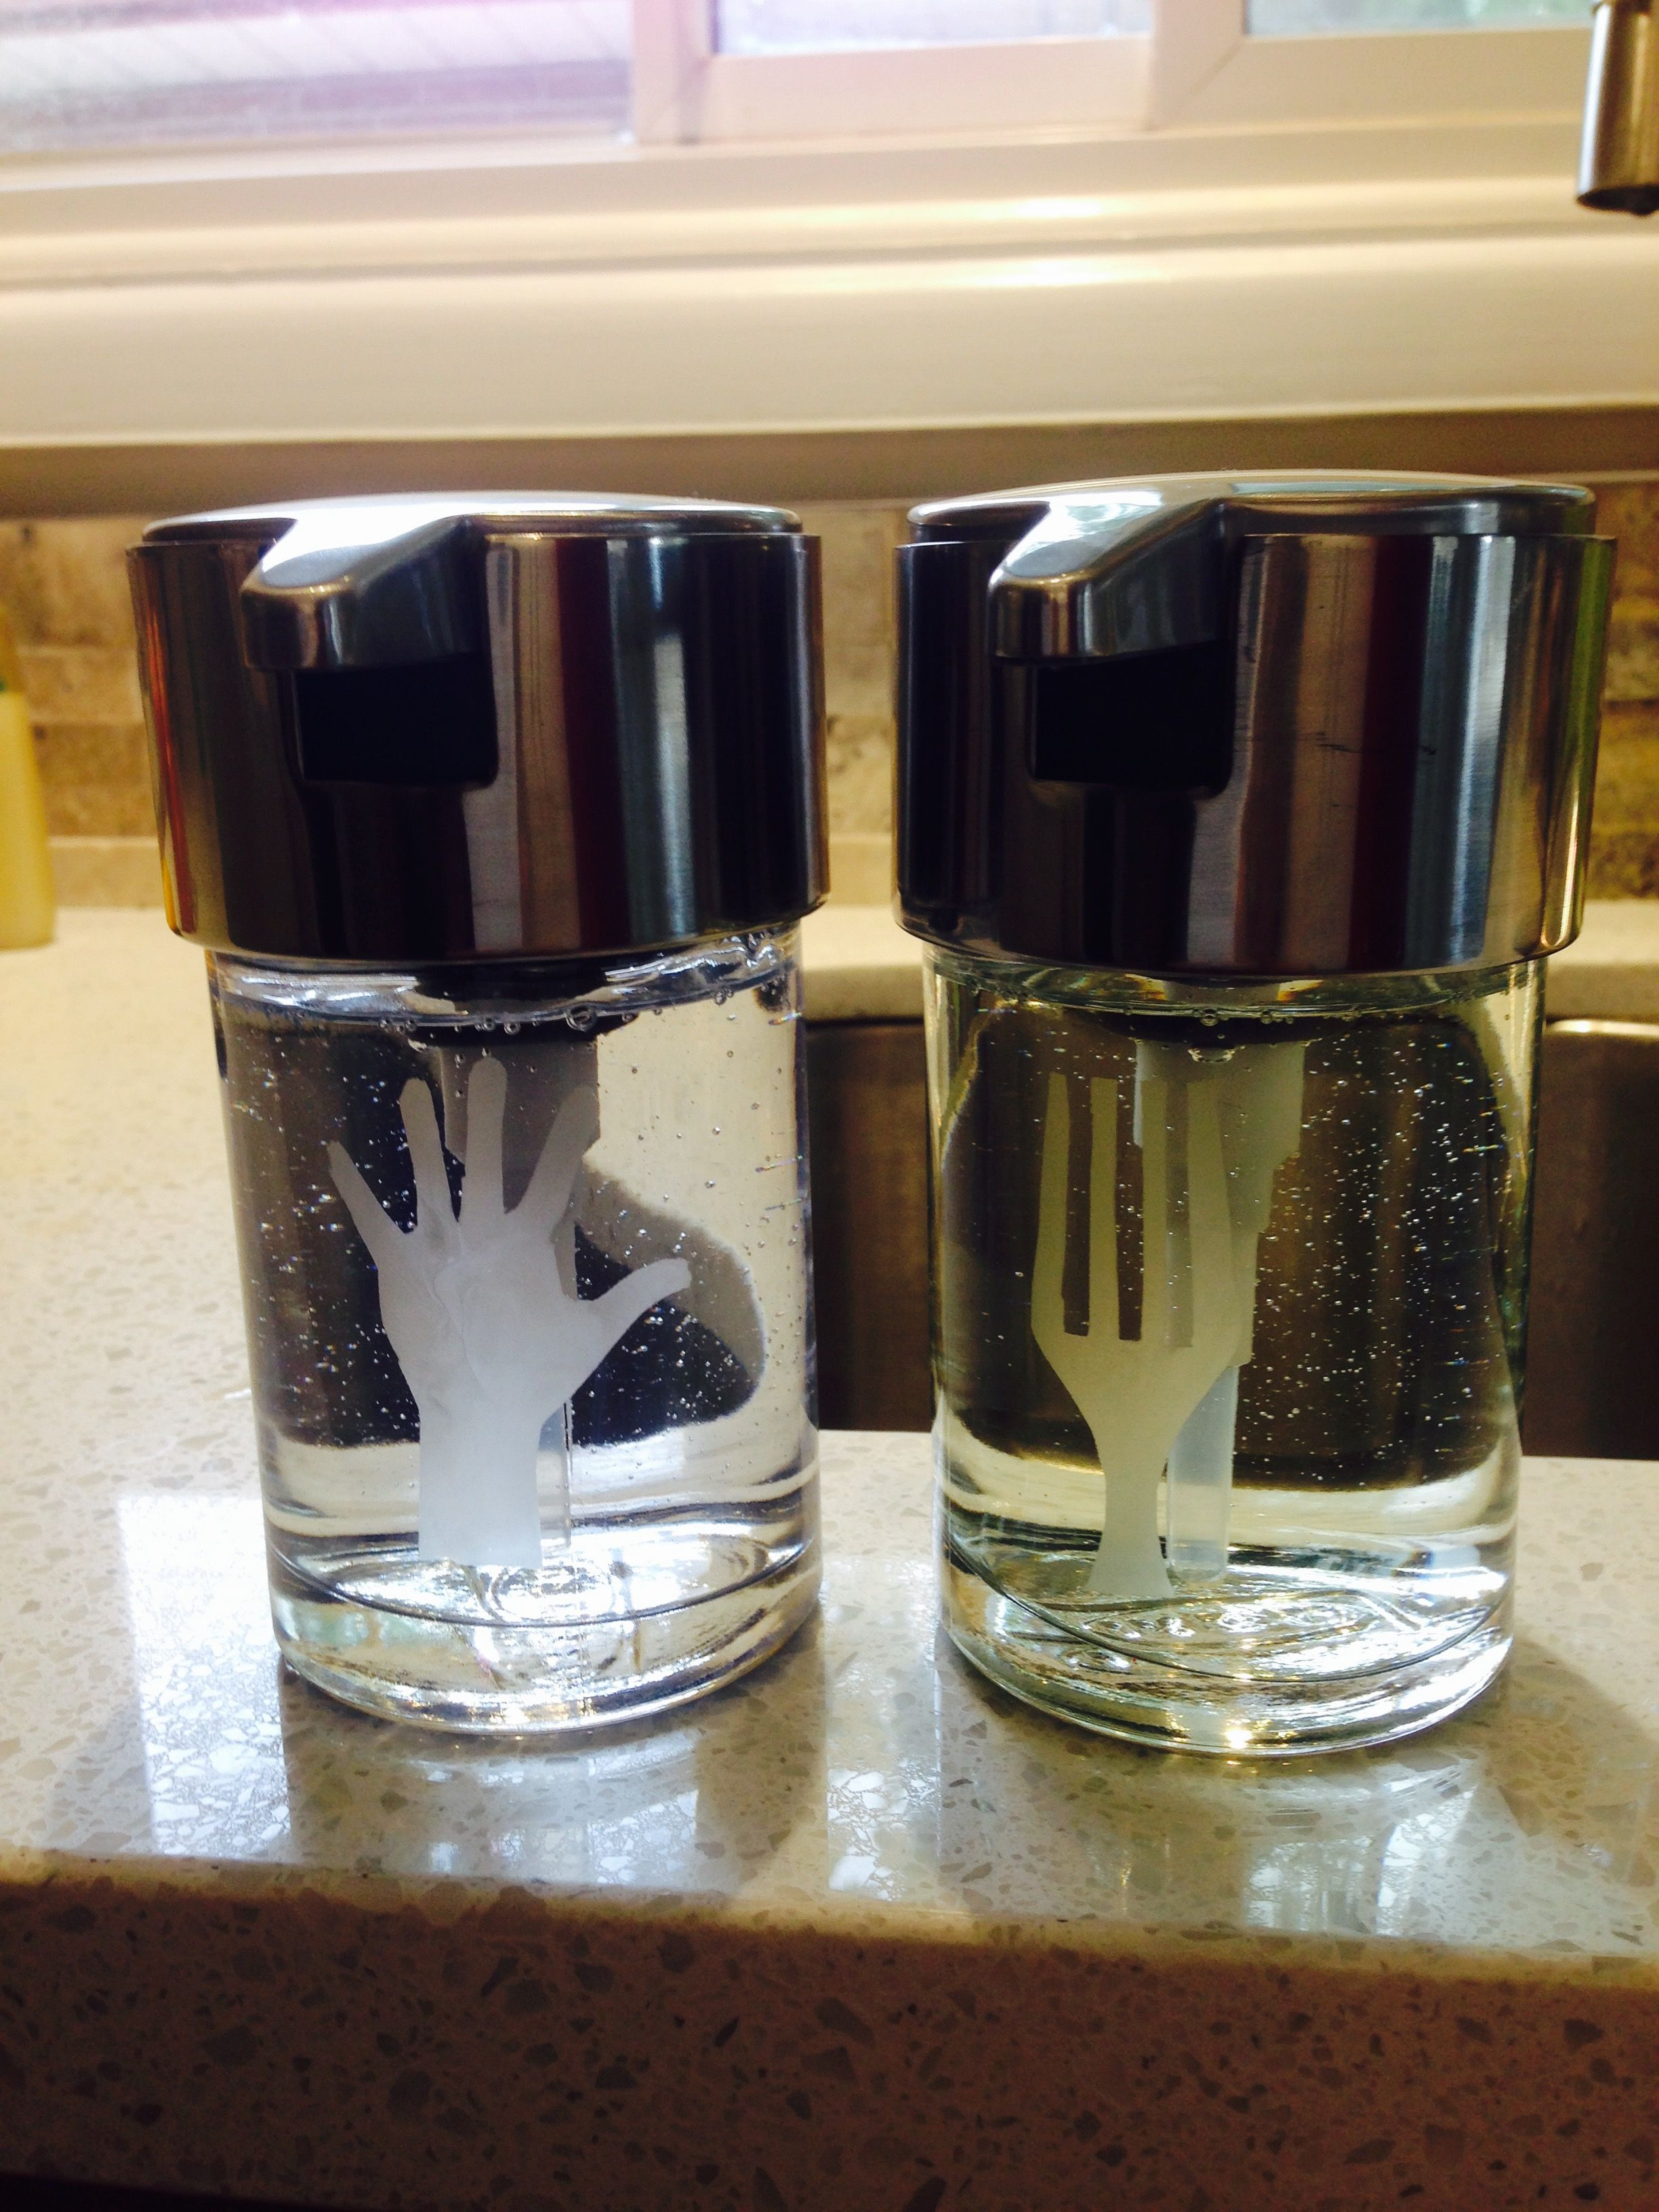 Exceptional Customized IKEA Kalkgrund Soap Dispensers For The Kitchen. Dish Soap And Hand  Soap. Etched